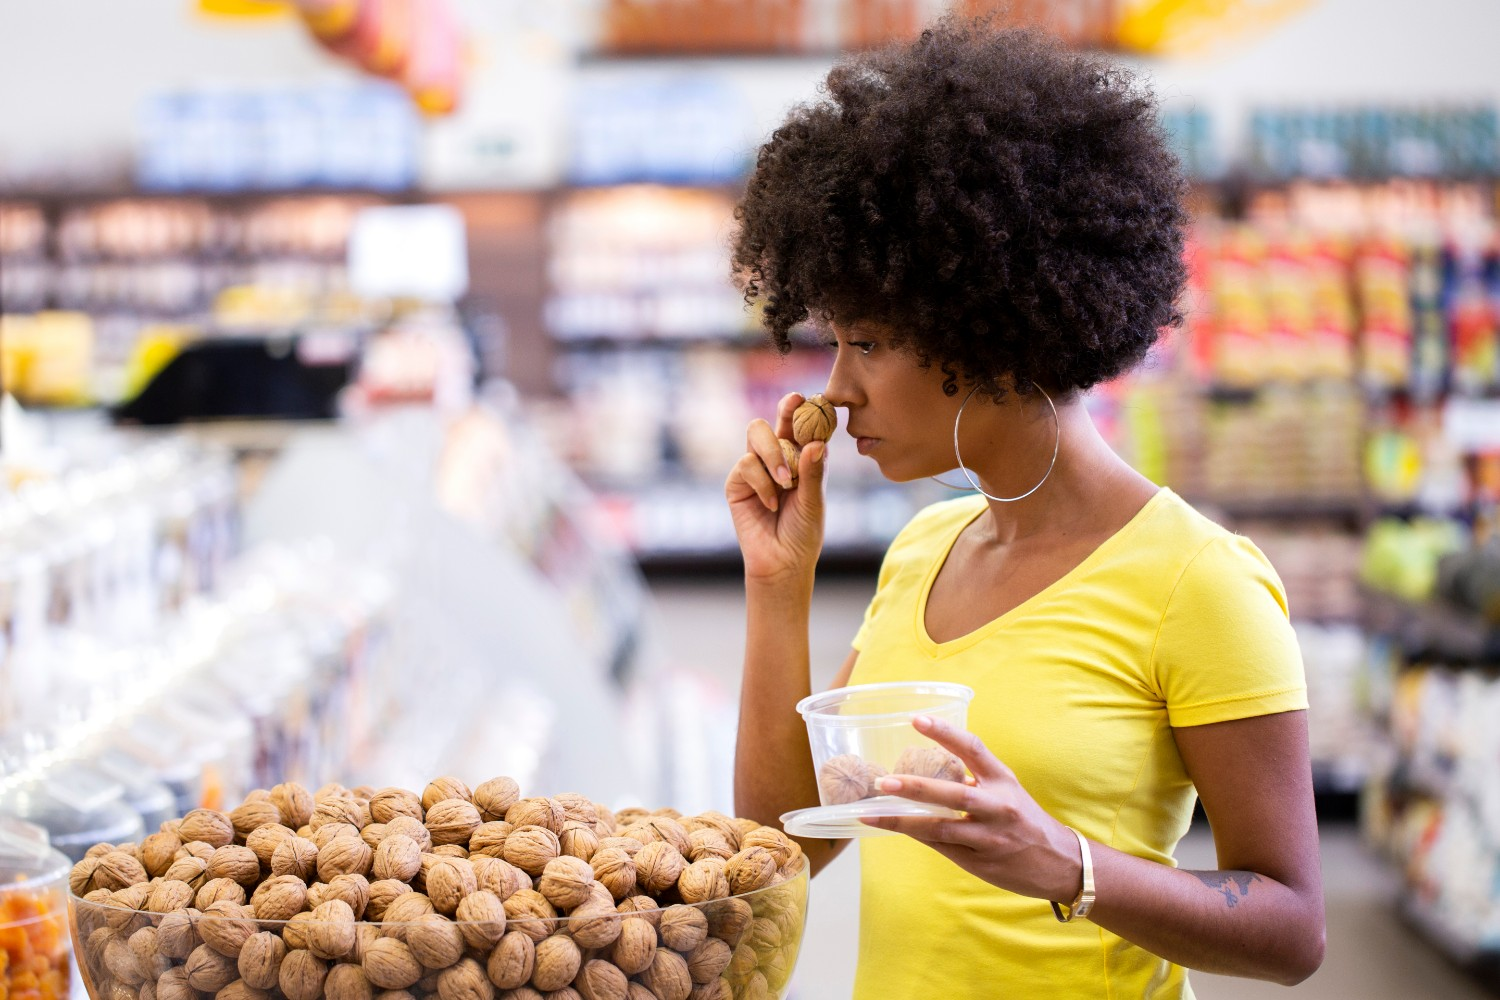 Check grains, seeds, and nuts for mold to protect yourself from aflatoxins | Shutterstock